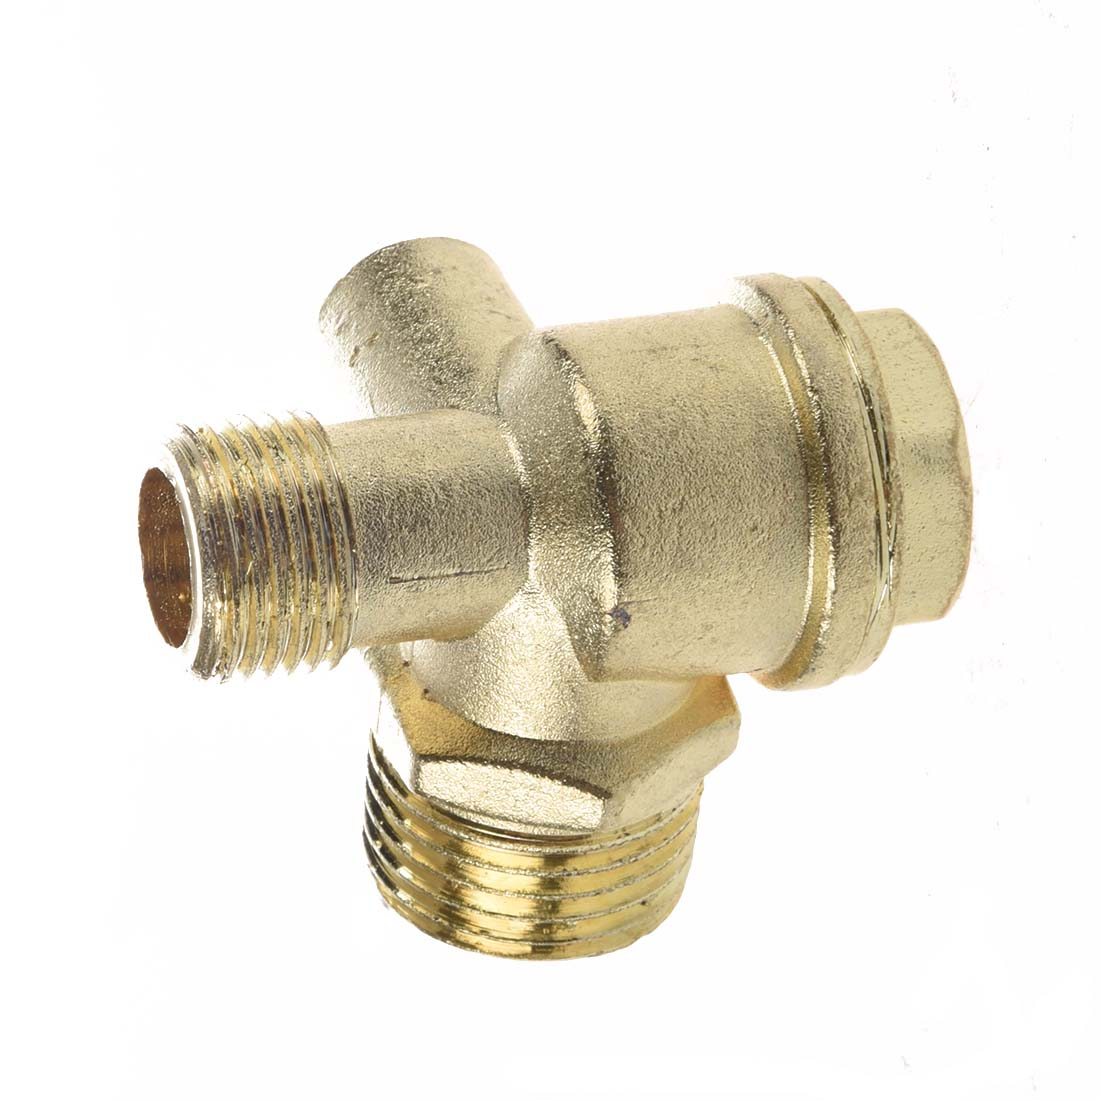 New Gold Tone 3/8 Female Thread Tube Connector Air Compressor Check Valve 3 8 check valve with solder connection for bus air conditioner and refrigeration truck replace sporlan check valve